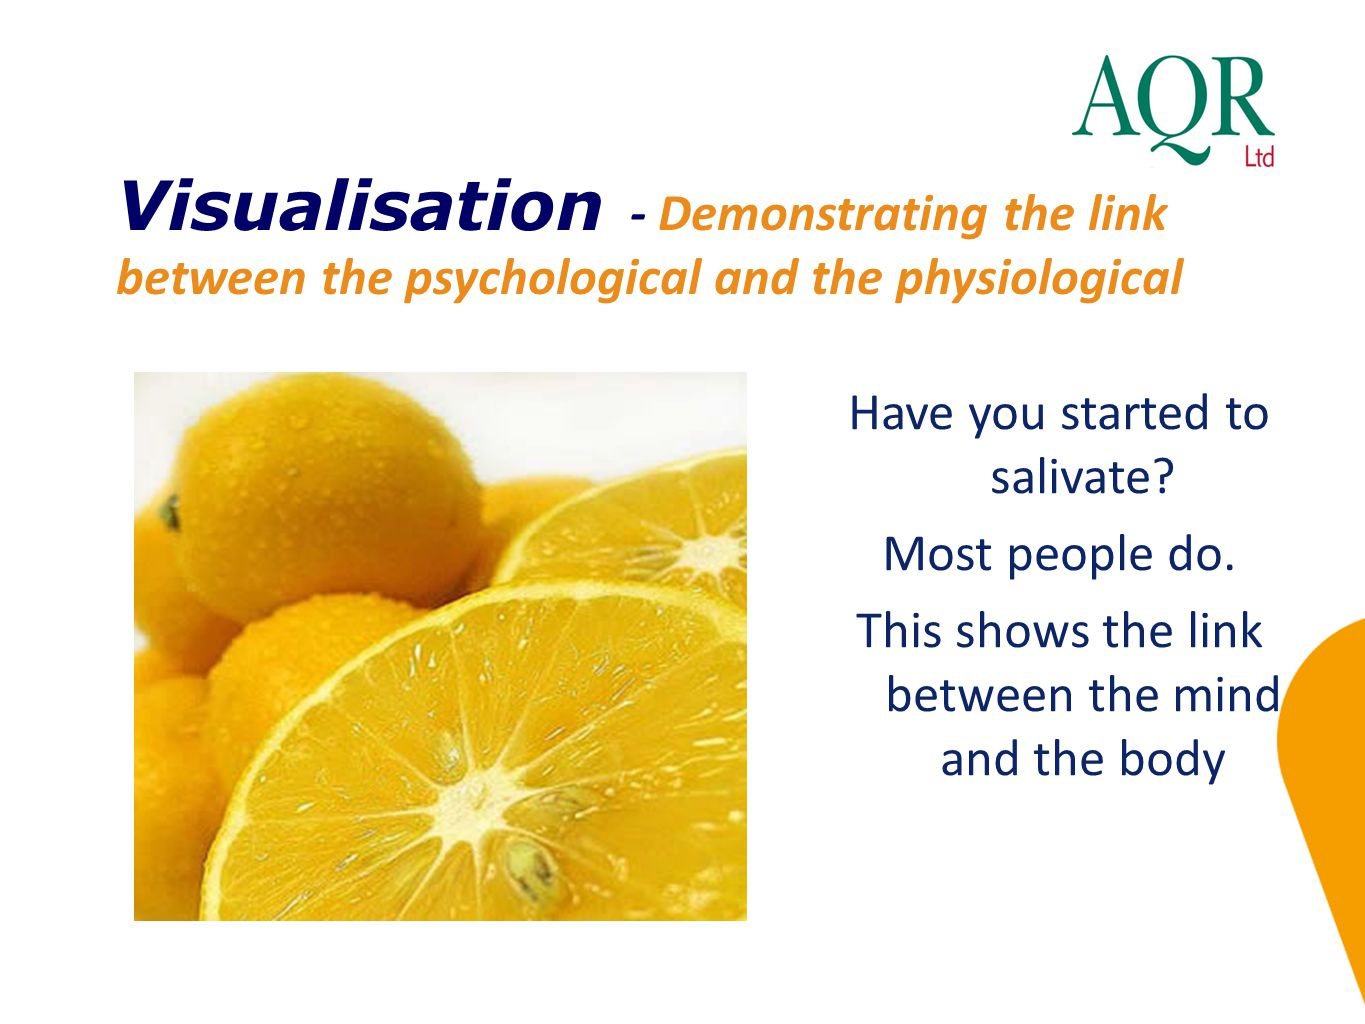 Visualisation - Demonstrating the link between the psychological and the physiological